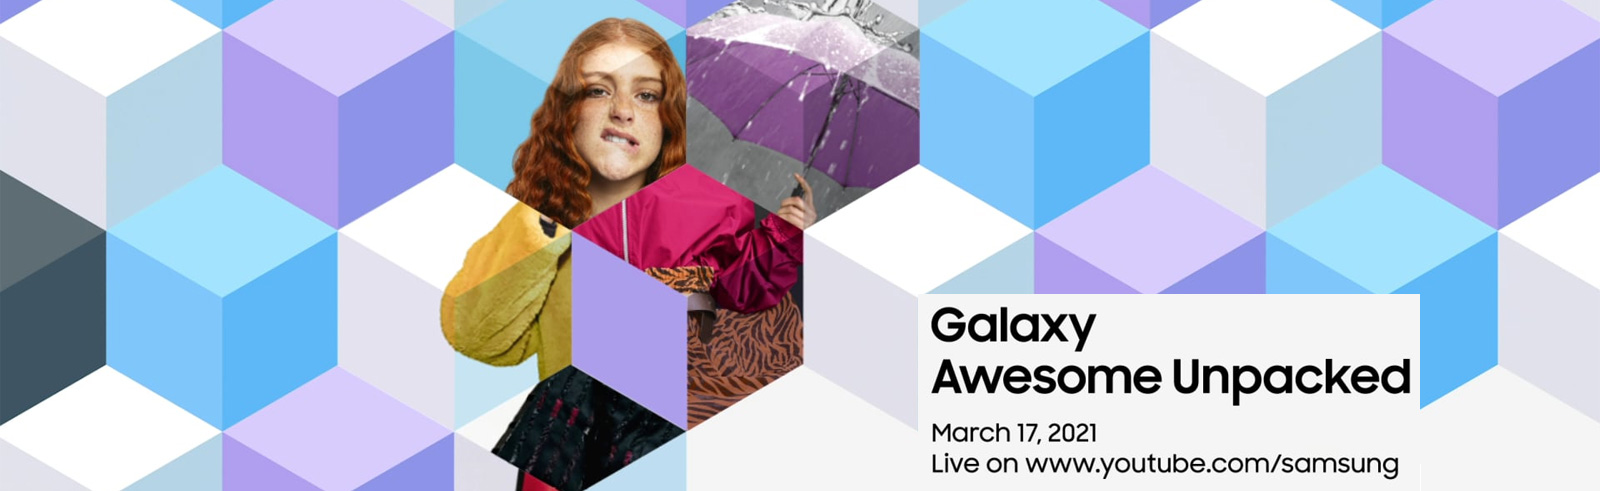 Samsung schedules a Galaxy Awesome Unpacked event for March 17, Galaxy A52 and Galaxy A72 expected